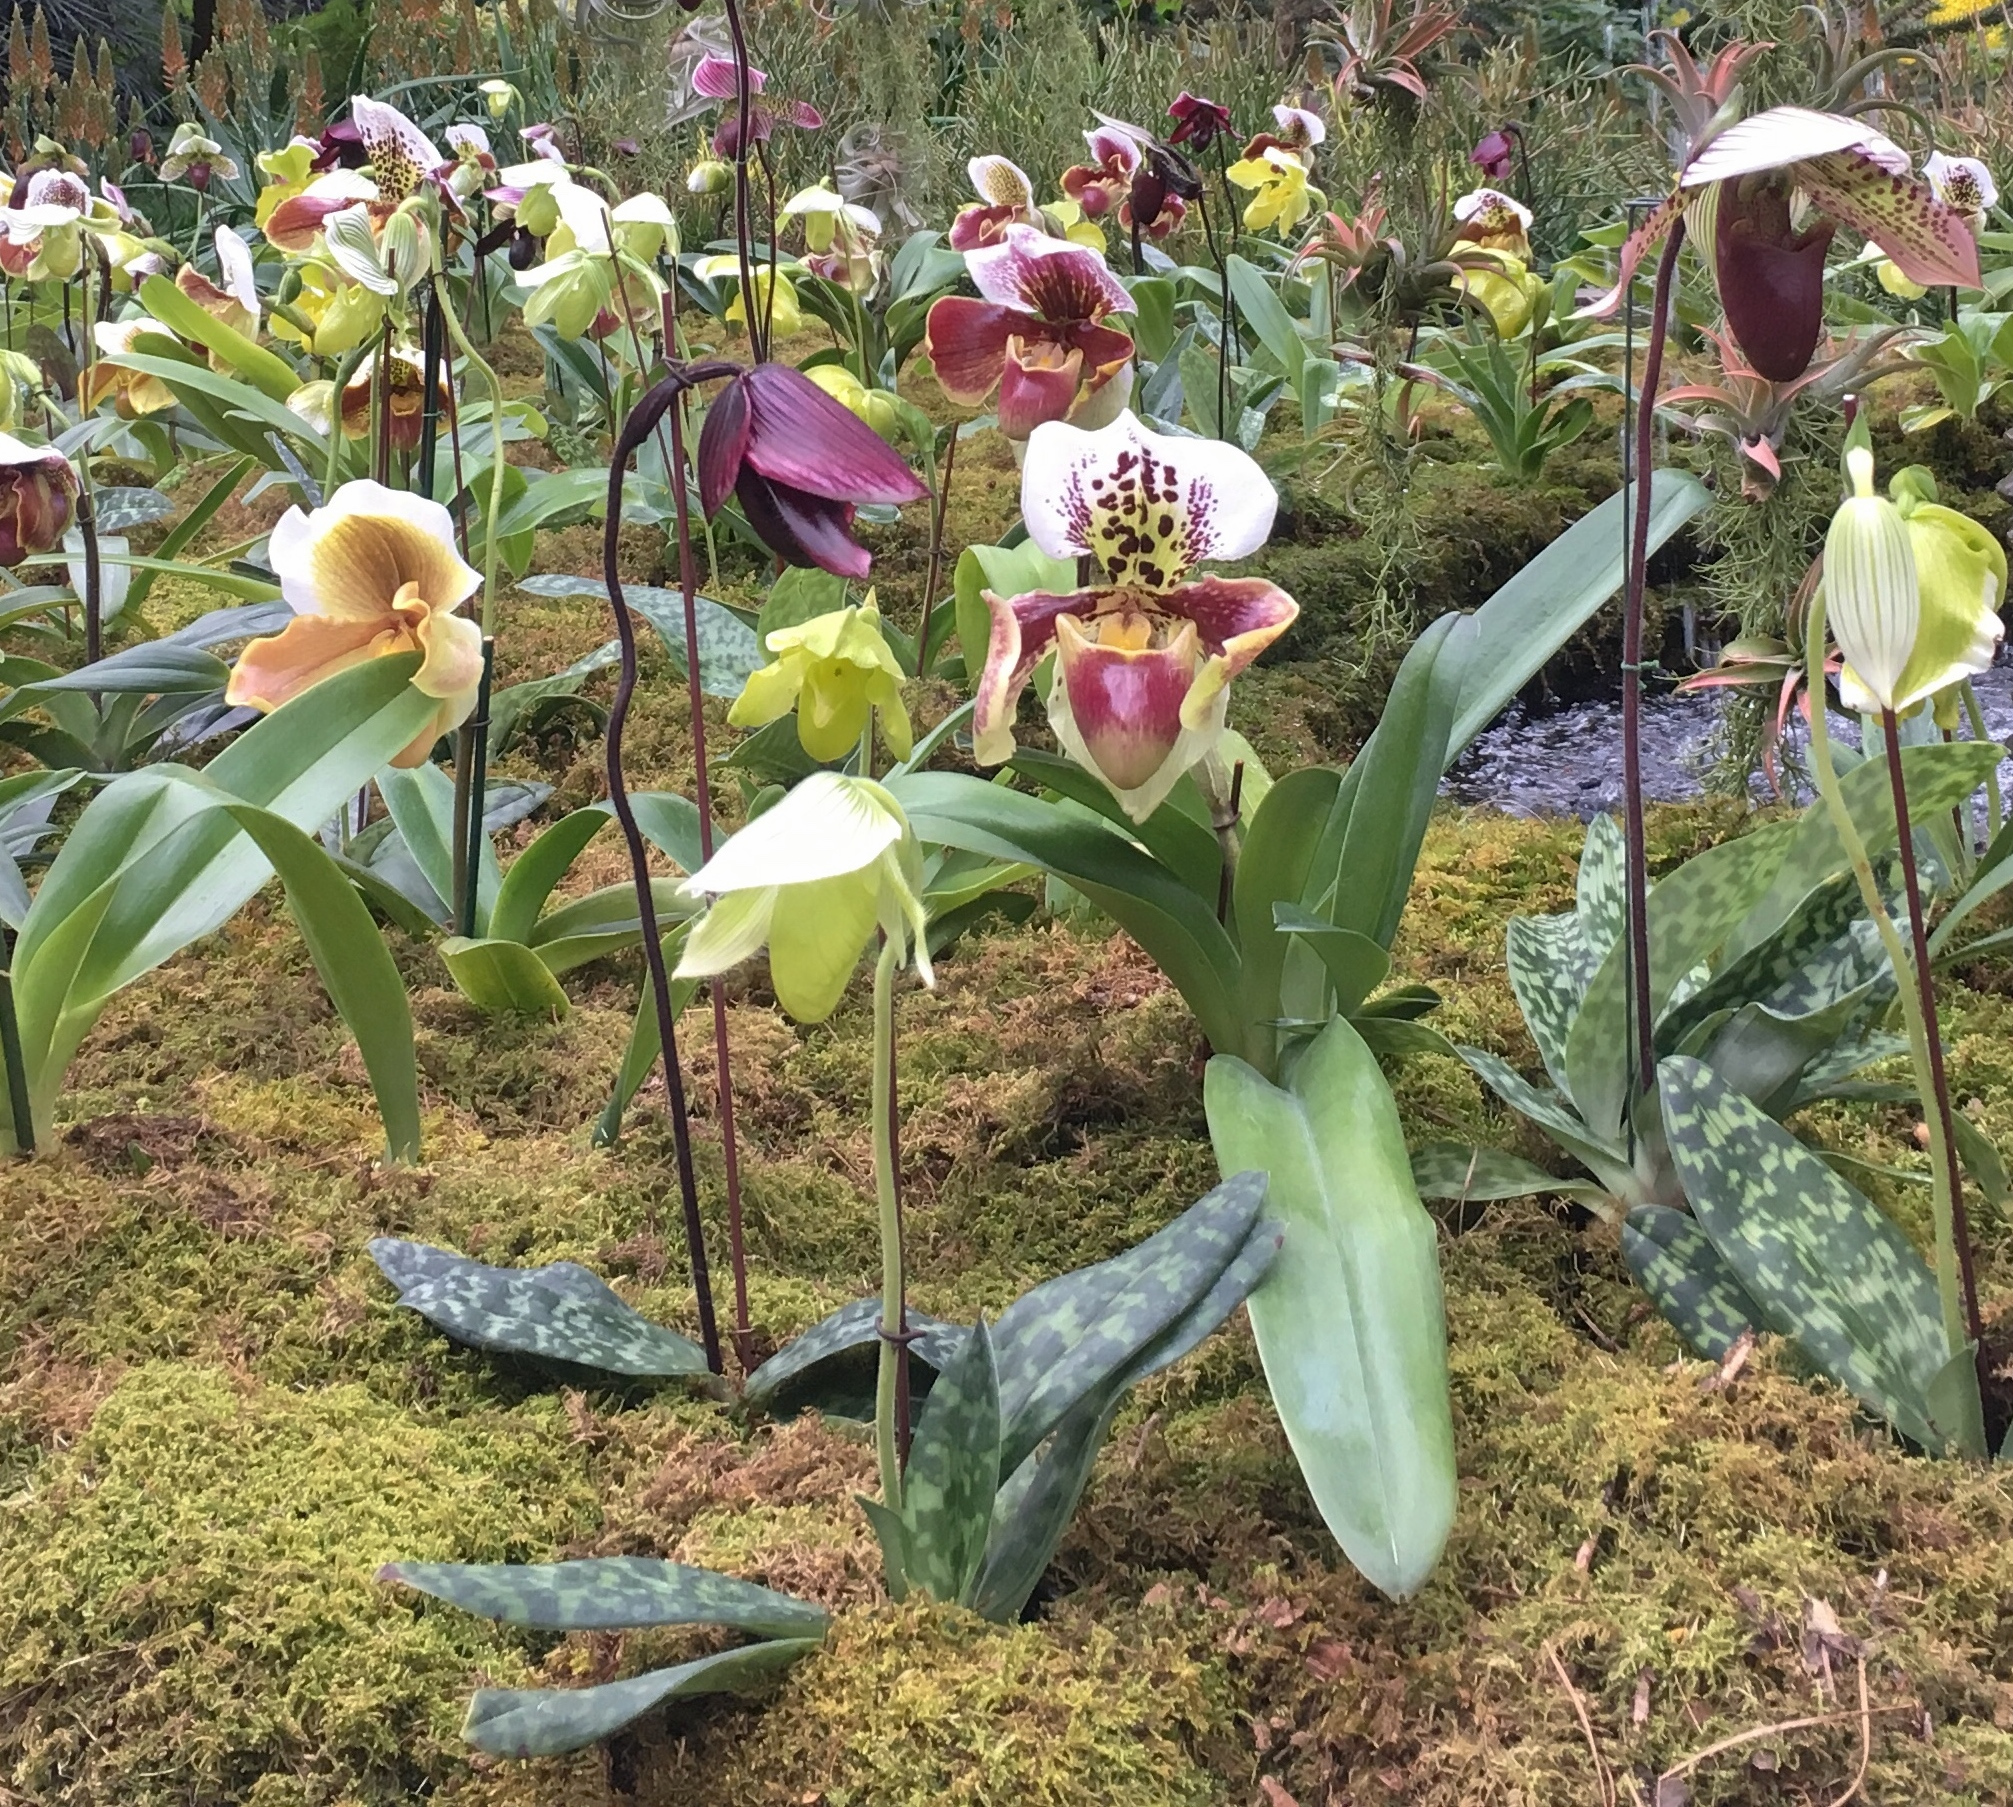 A field of orchids at Longwood Gardens